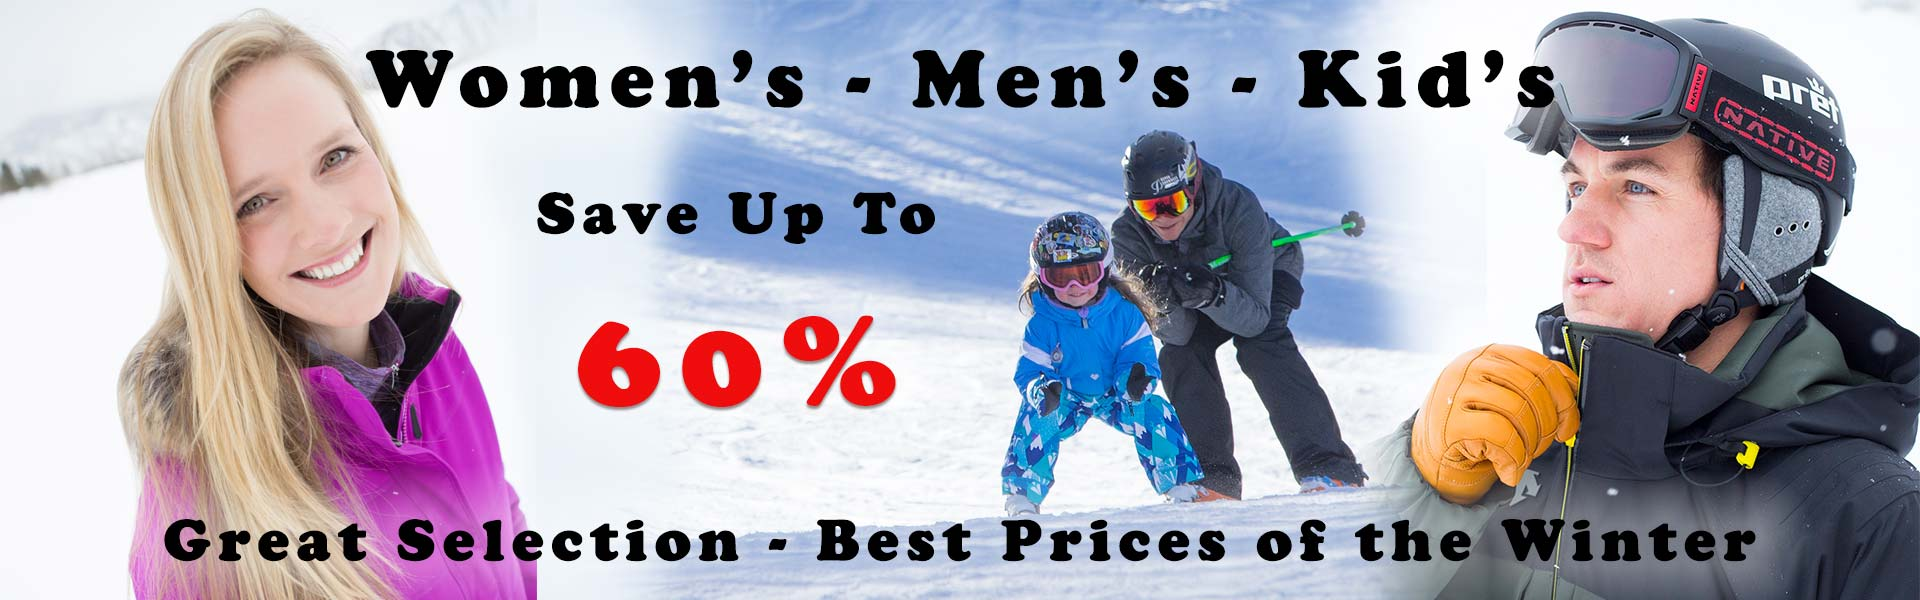 Save on Boards, Helmets, Goggles & Winter Clothing